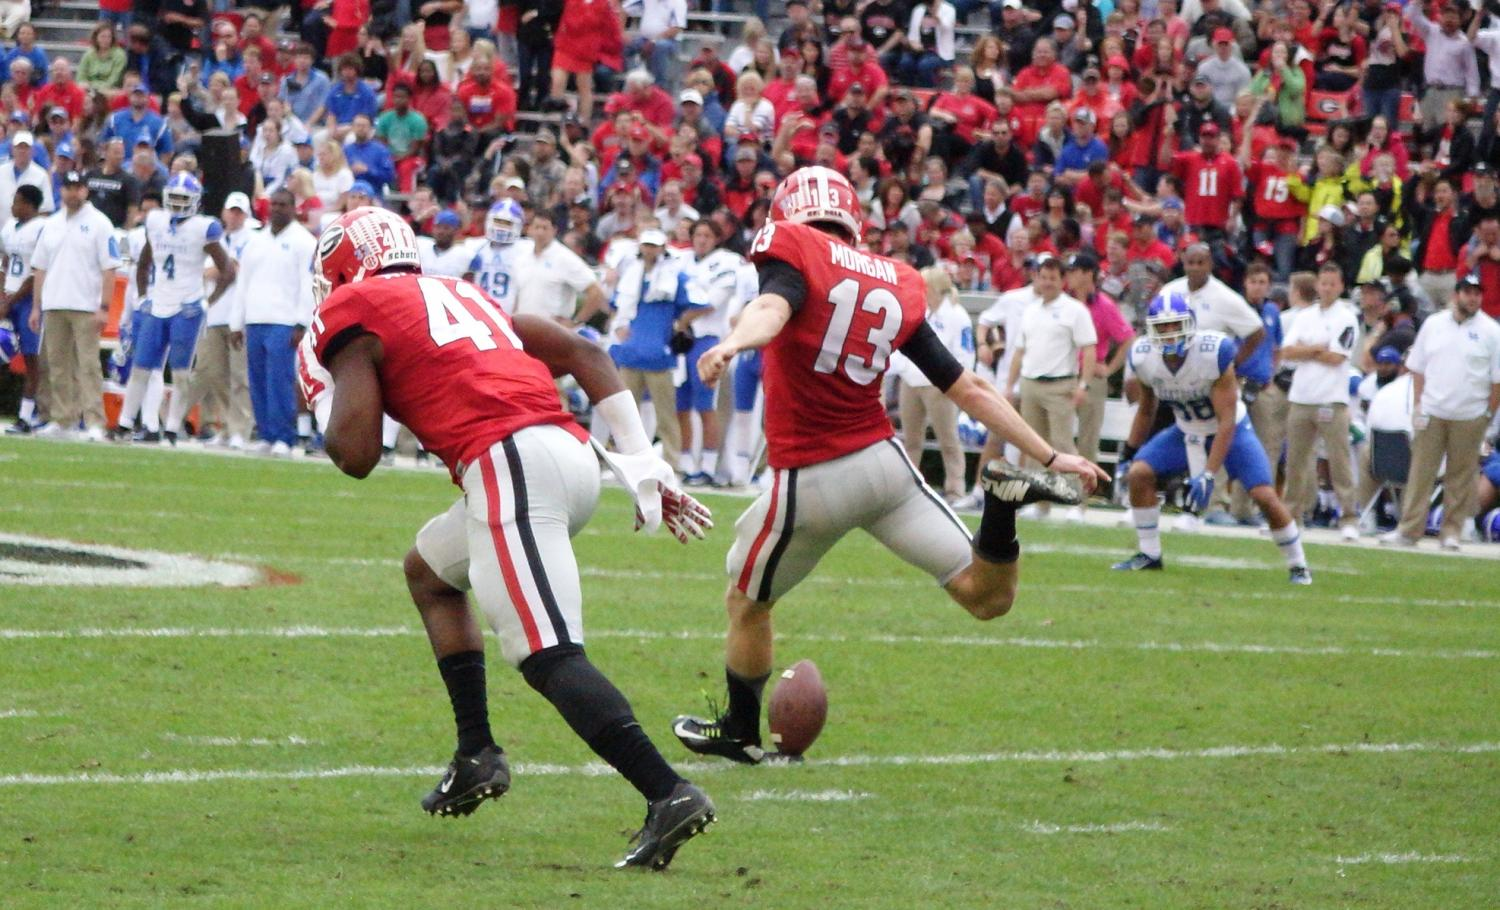 Georgia kicks off after going up 17-3 during second half Kentucky vs. Georgia 07-Nov-2015